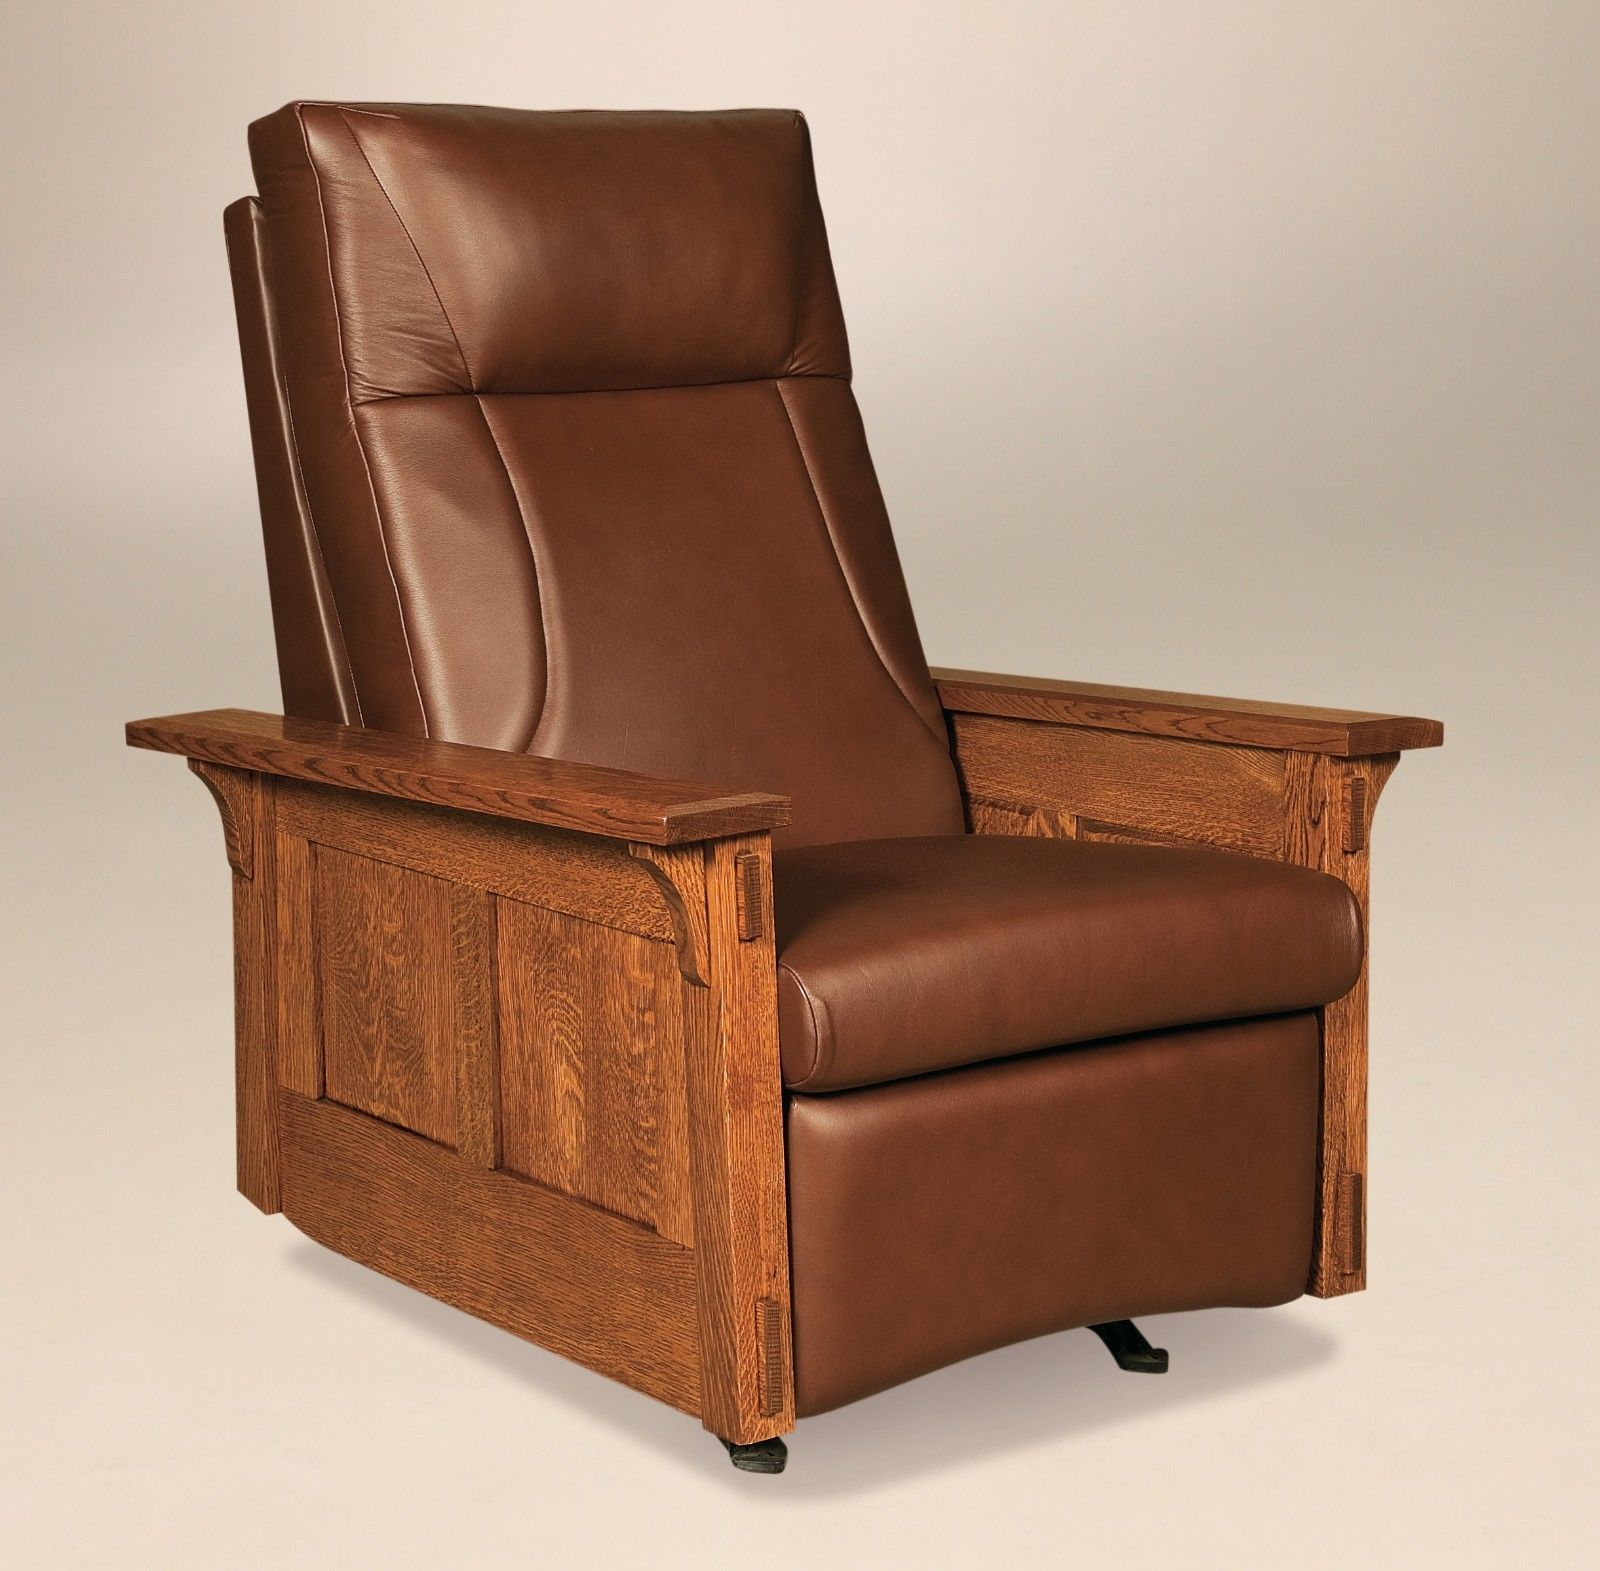 Details About Amish Mission Arts And Crafts Recliner